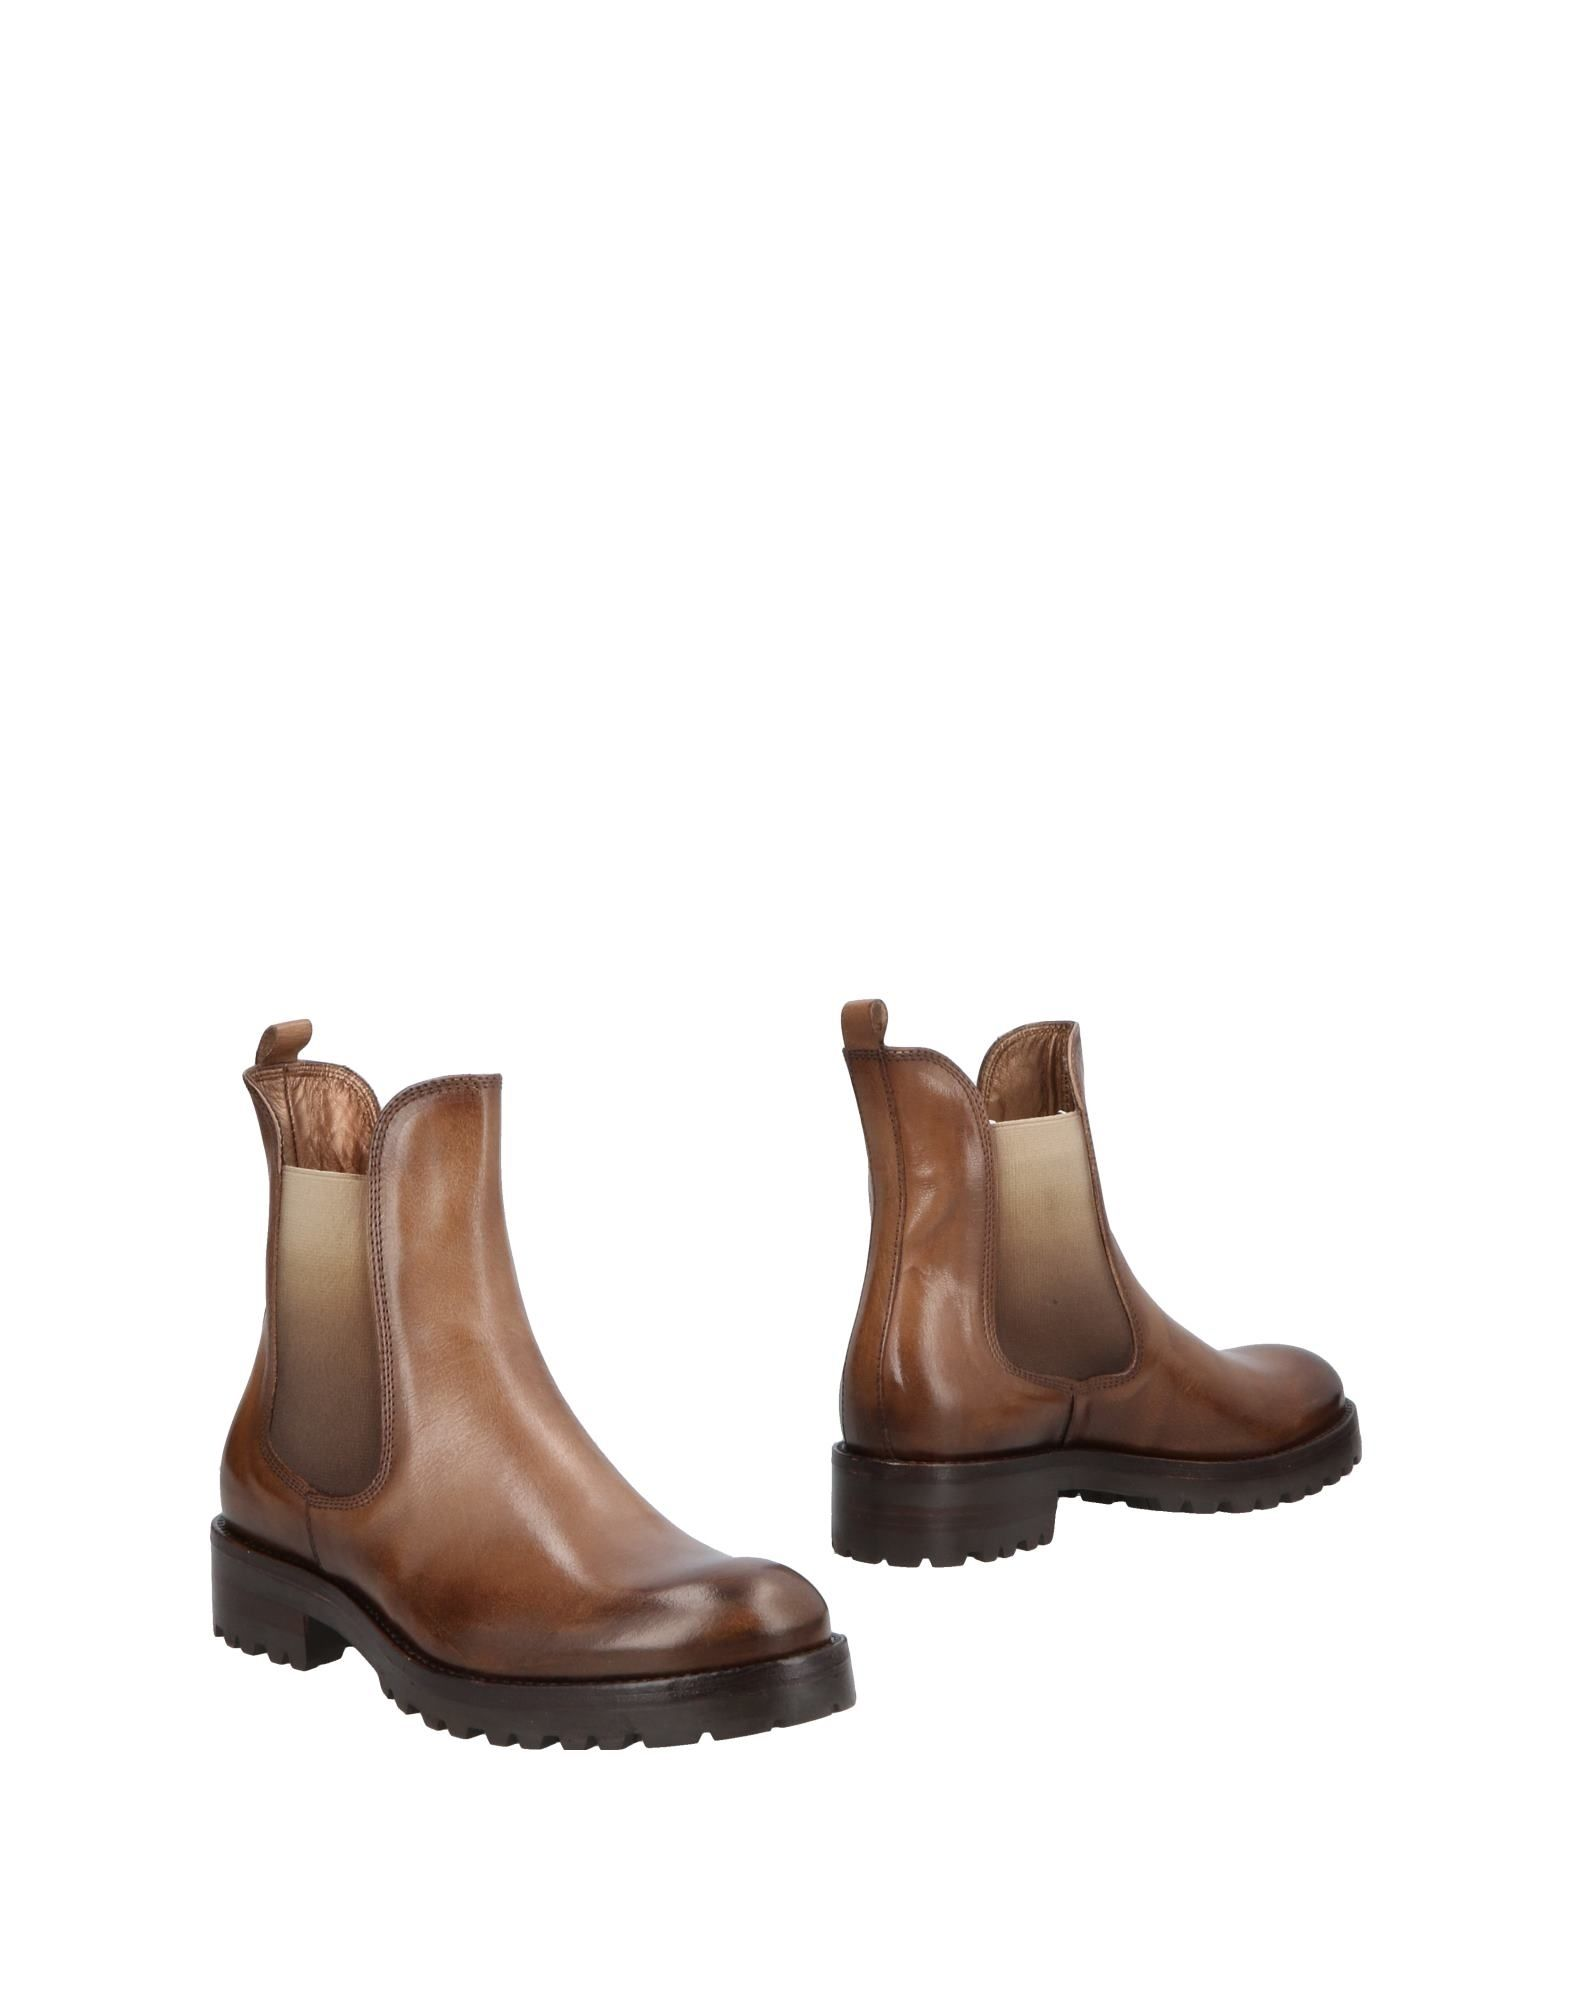 Chelsea Boots Boots Chelsea Carvani Donna - 11503893DM 7f49db